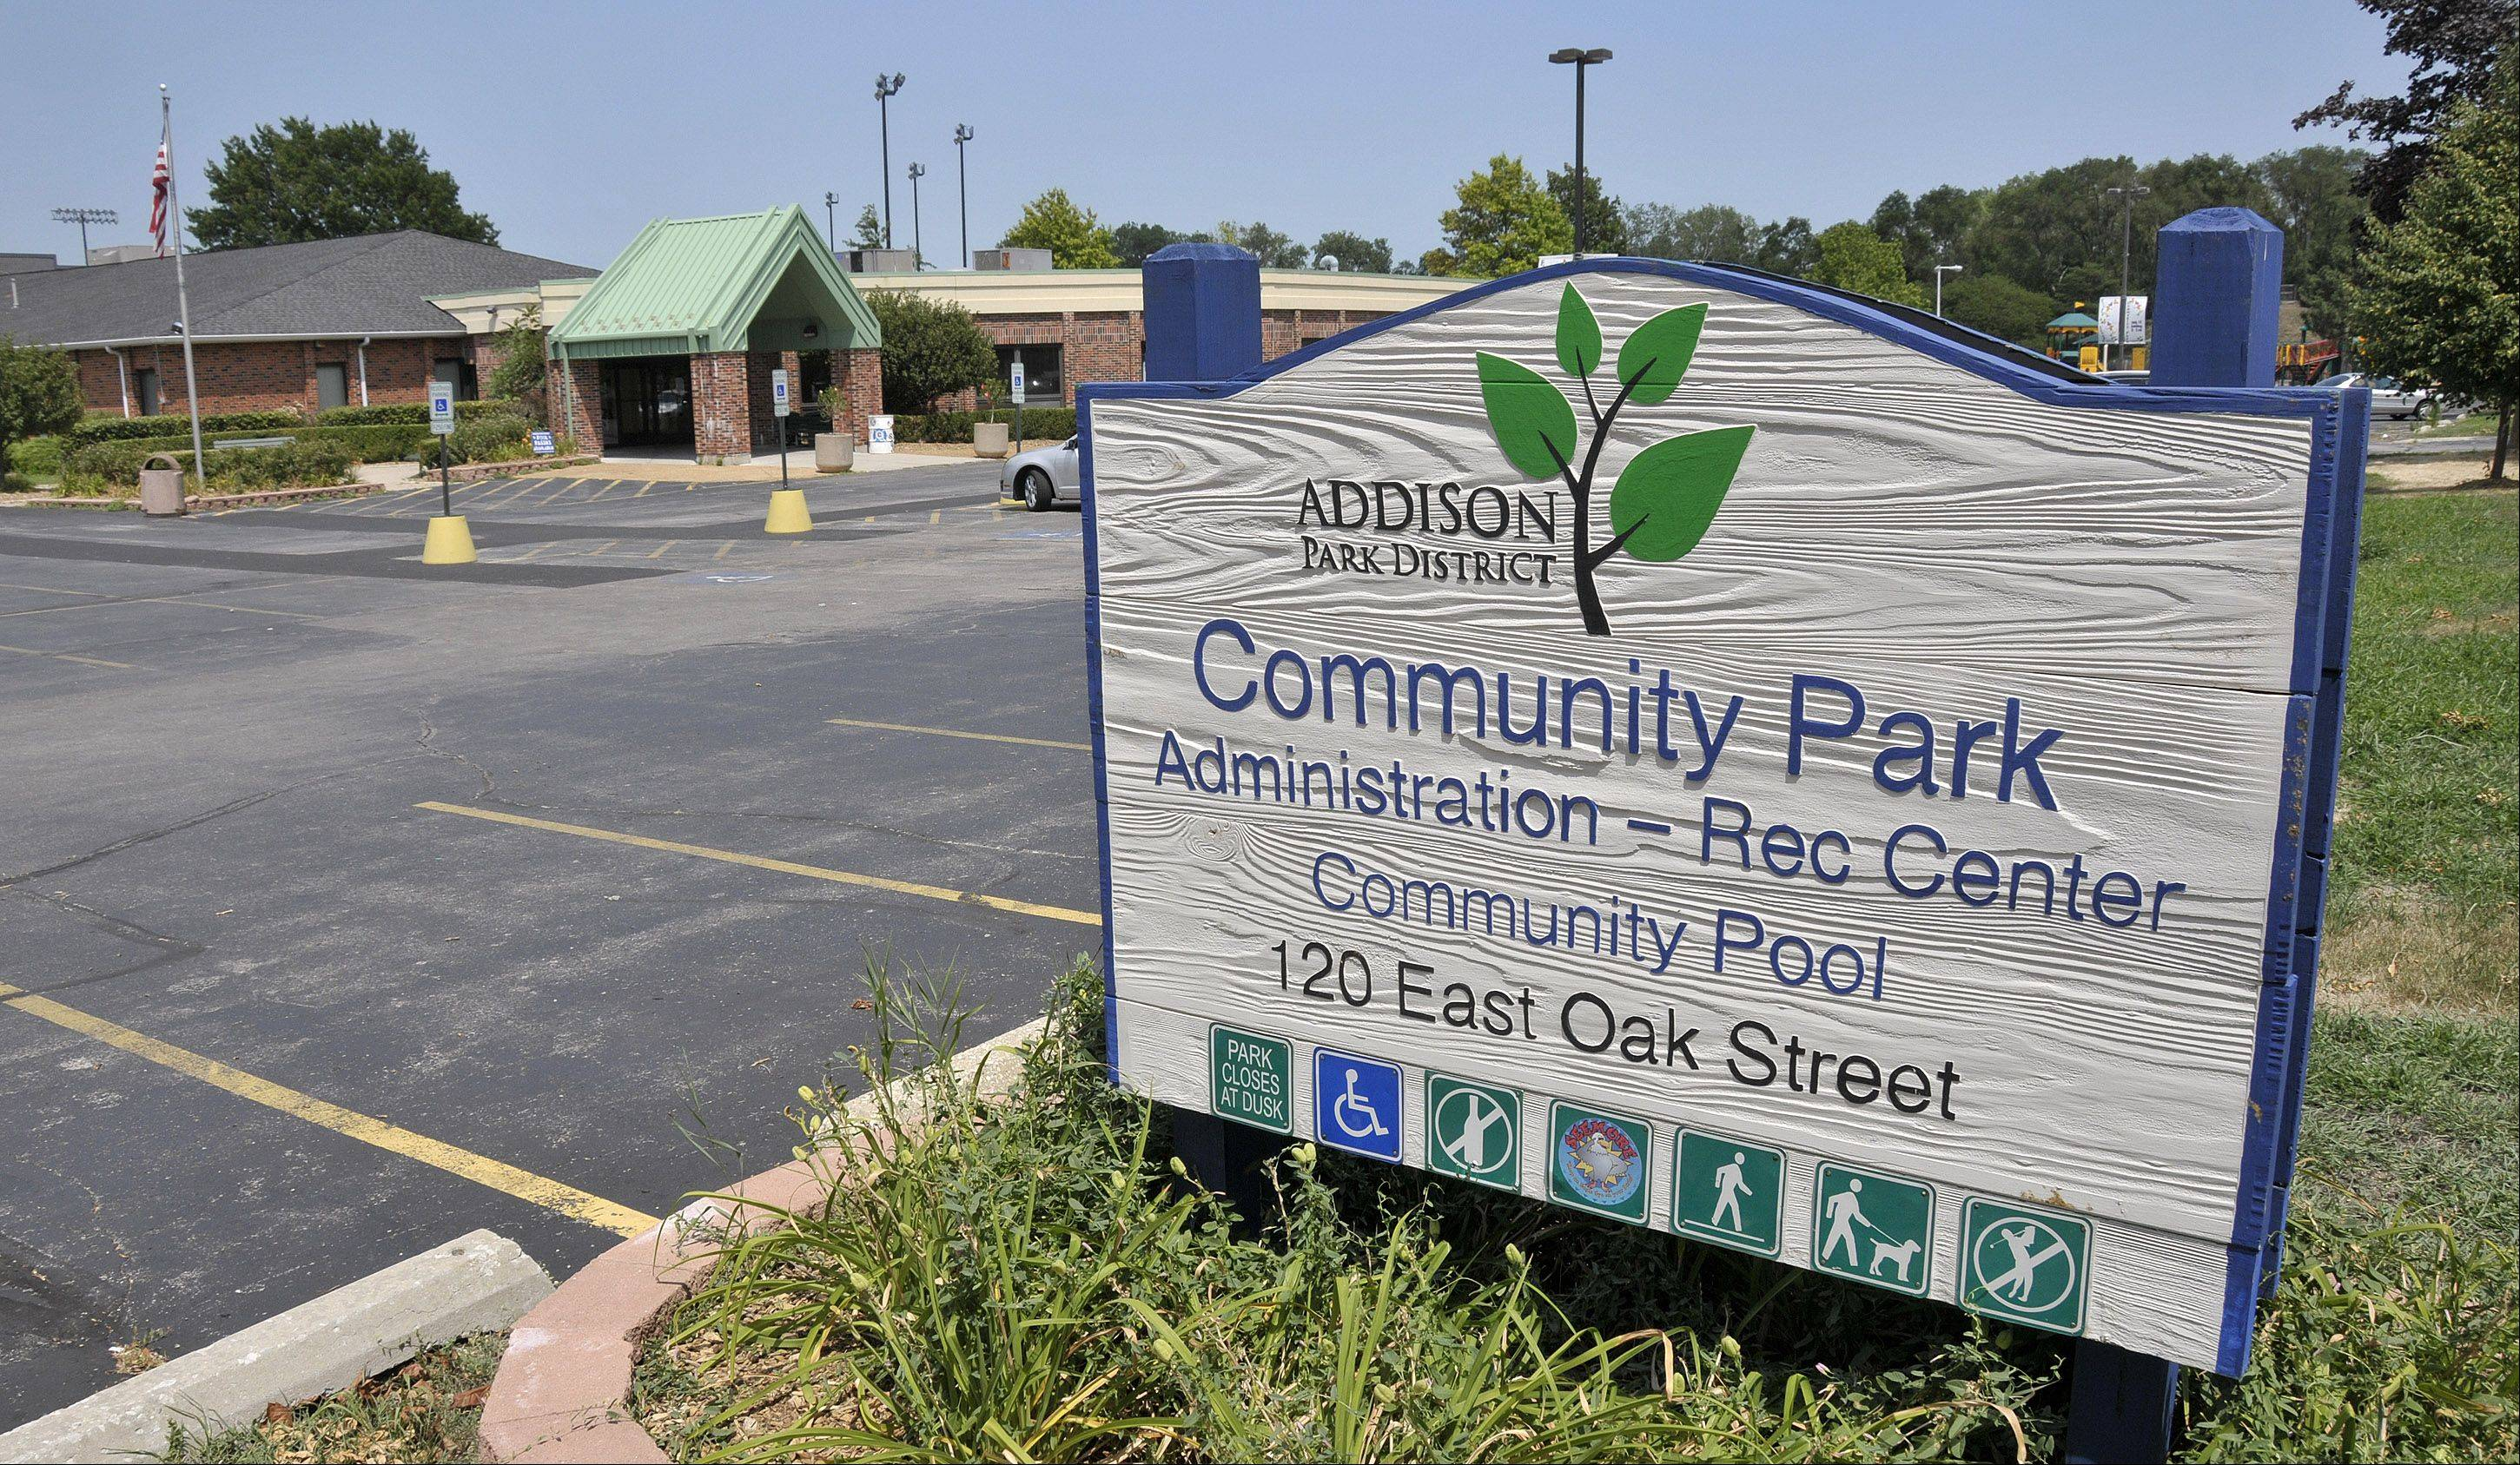 Addison Park District is in the midst of a multiyear $1.7 million plant to improve Community Park.